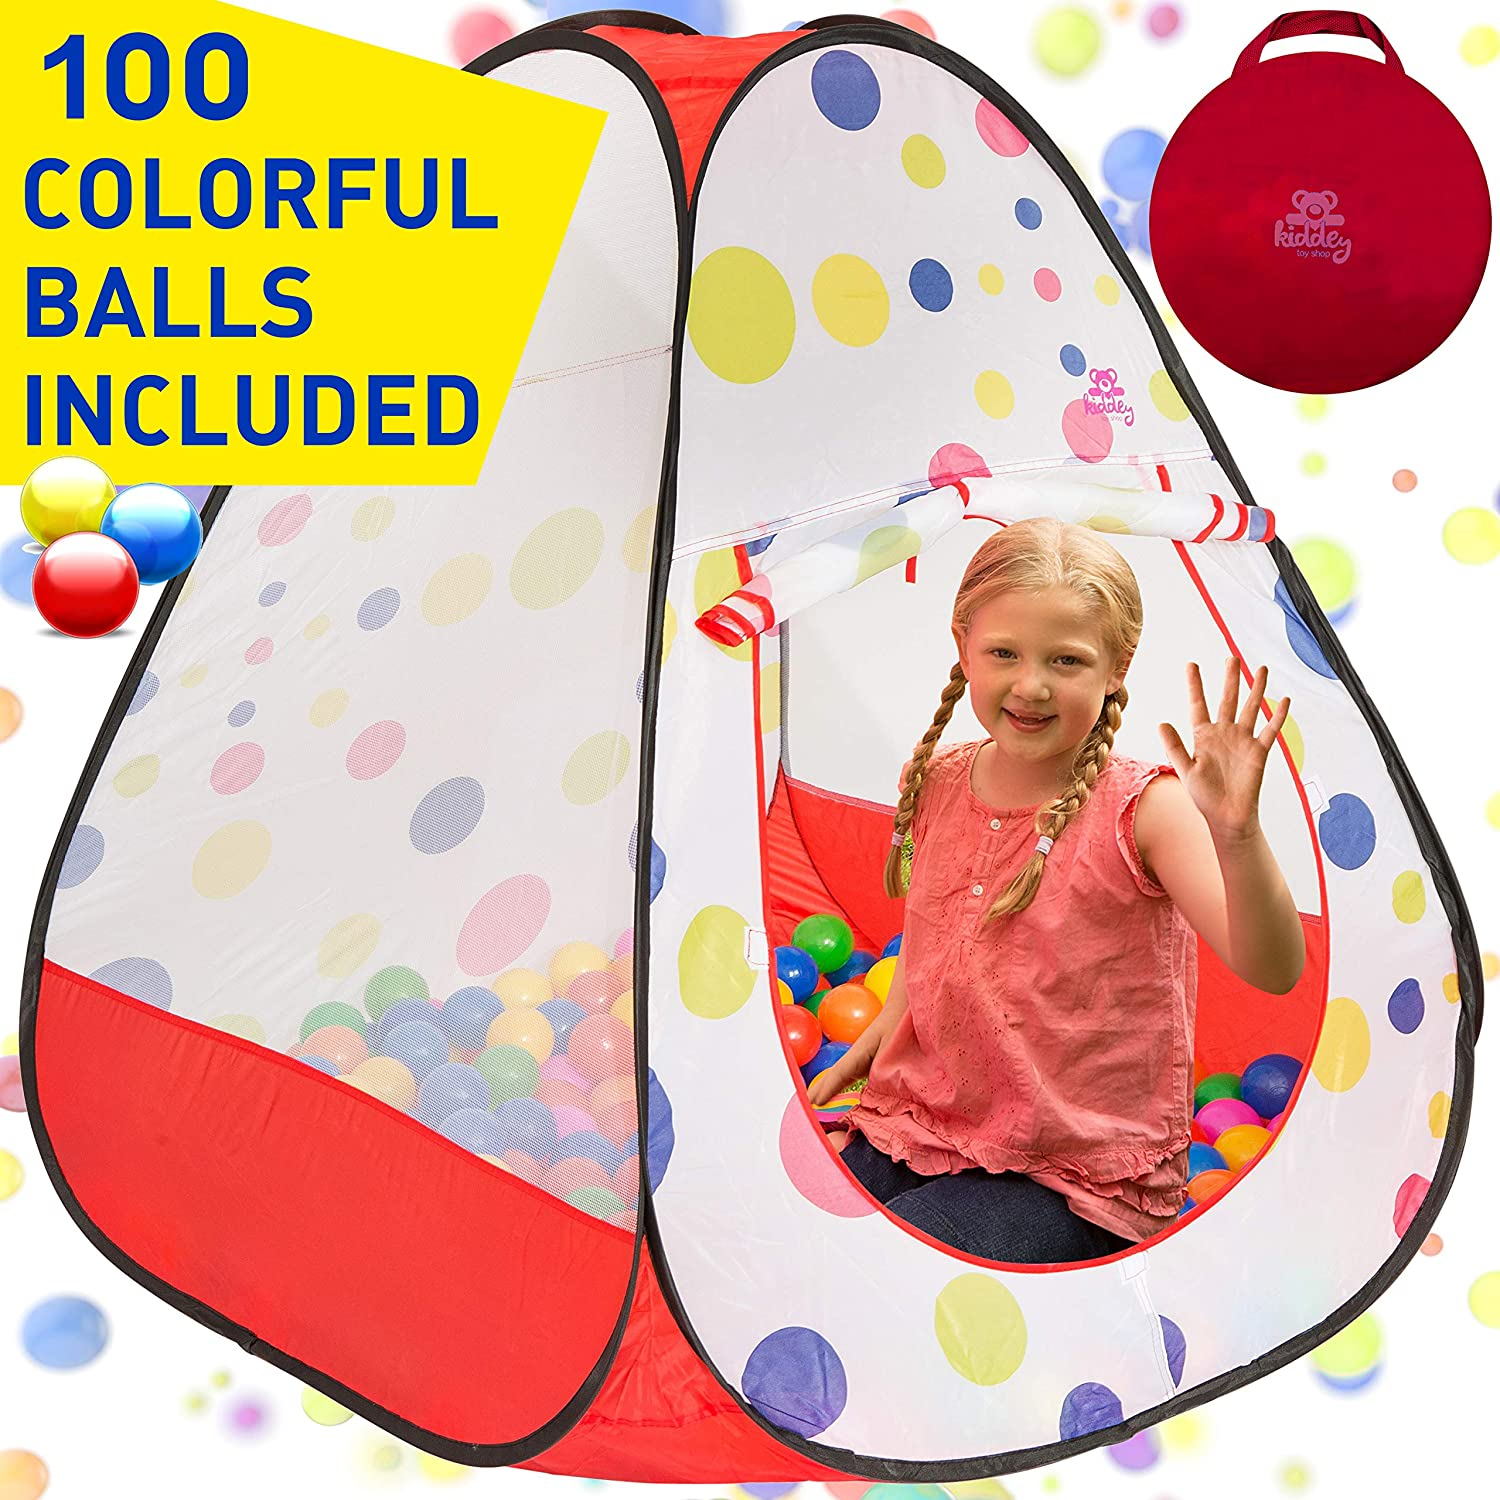 Kiddey Kids Ball Pit Play Tent - 100 Ball Pit Balls Included - Pops up No Assembly Required - Use as a Ball Pit or As an Indoor / Outdoor Play Tent, (Ball Pit with Balls)